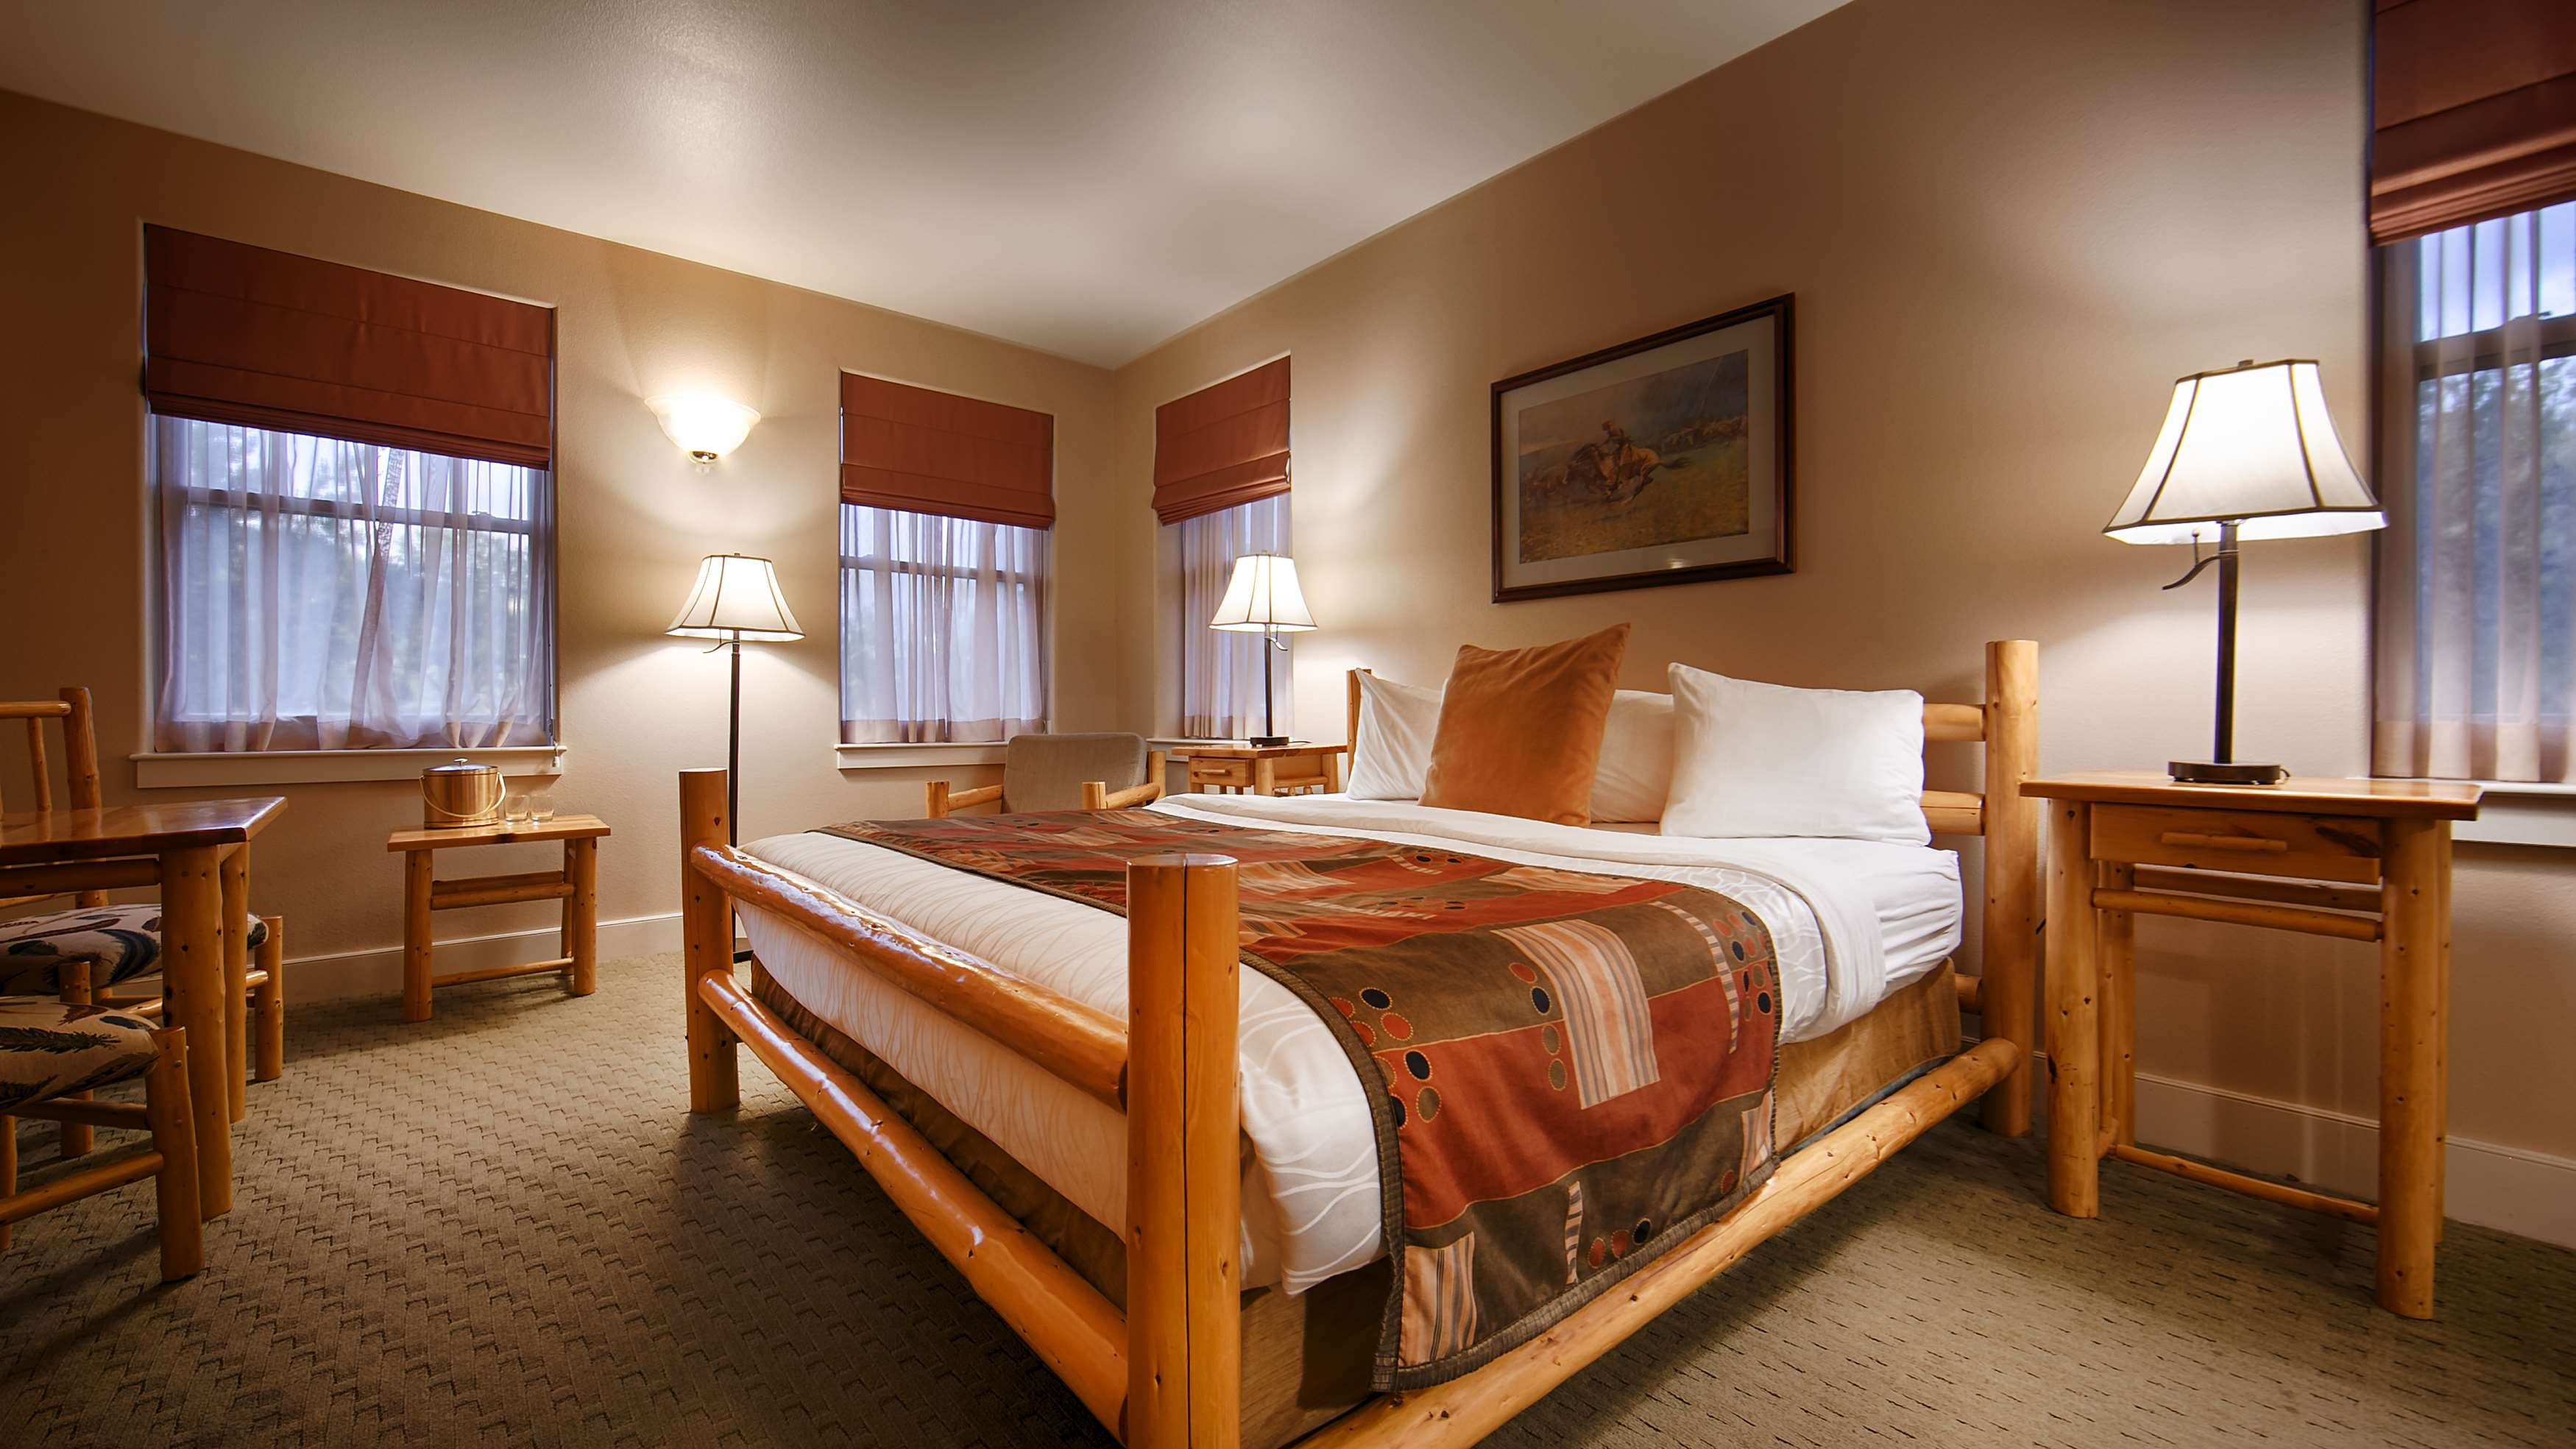 Best Western Plus Plaza Hotel image 21